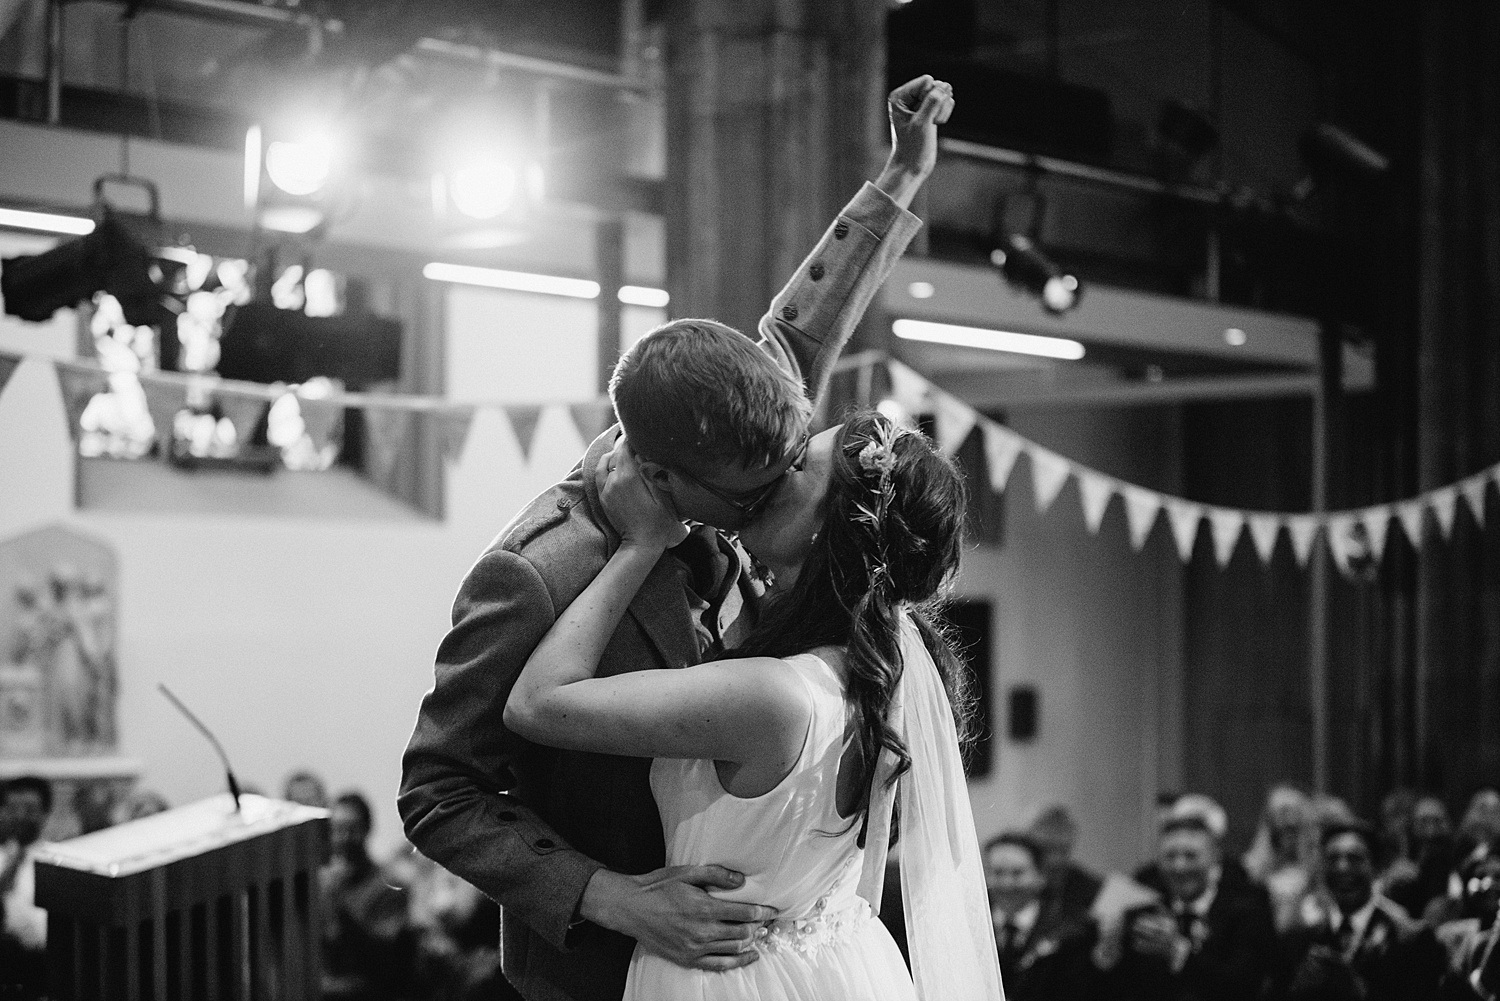 Claire-Fleck-Scottish-wedding-photography-2017__0002.jpg